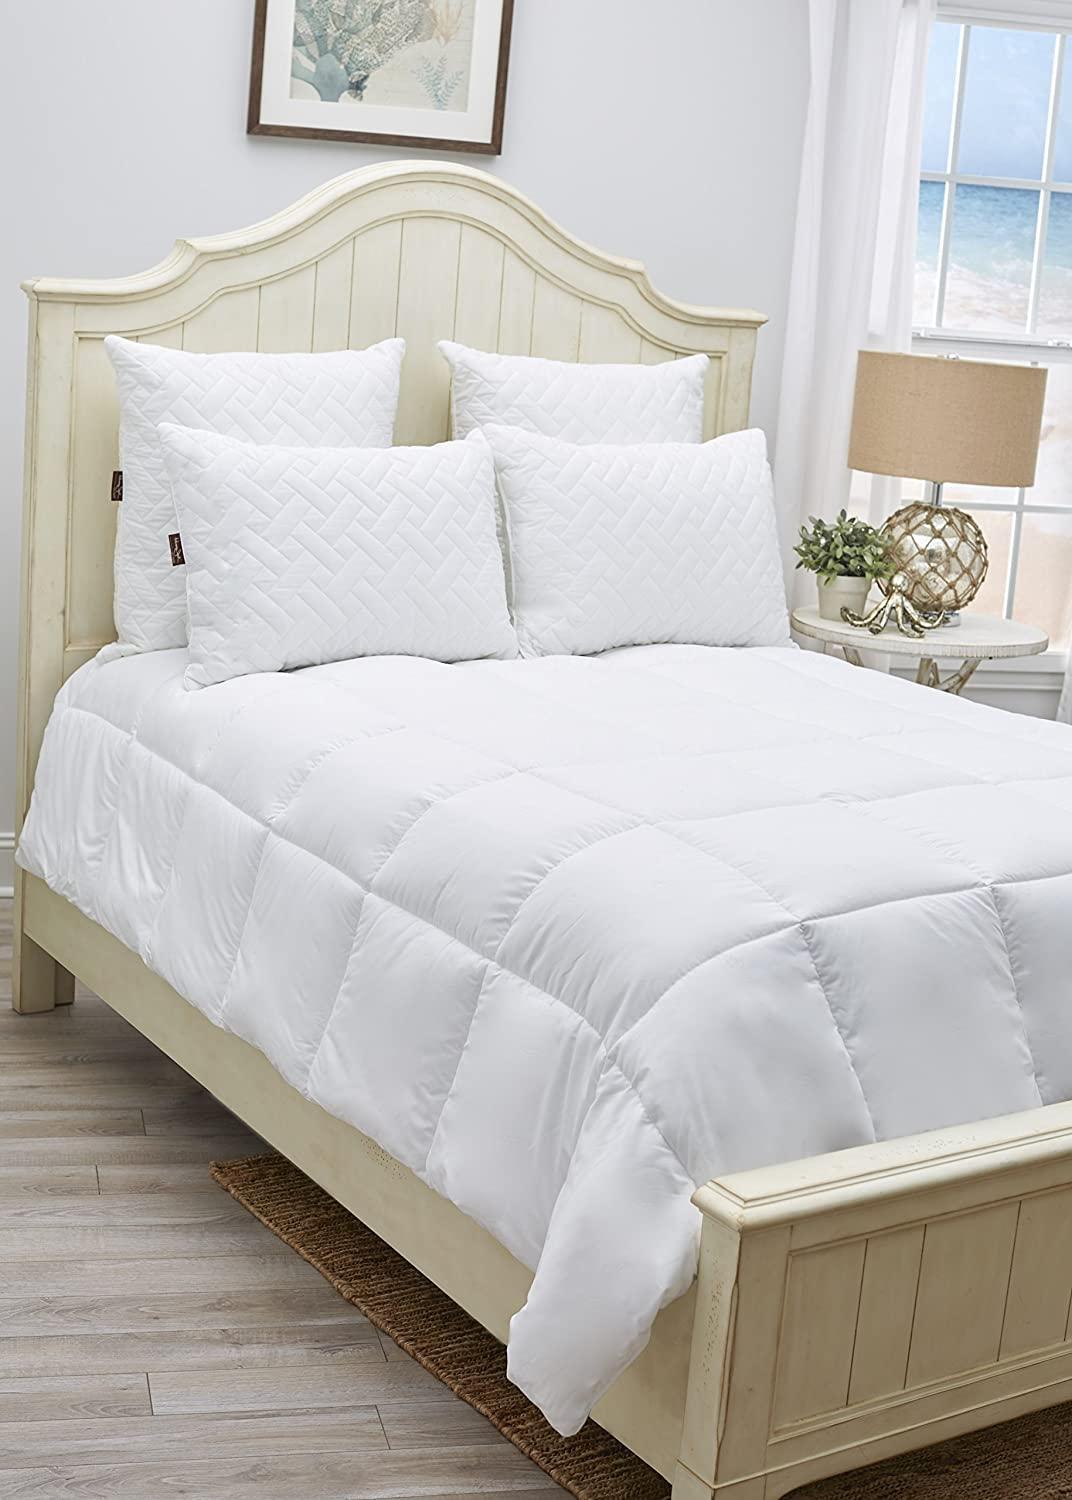 comforters buy between is how cover whats and comforter bedding a quilt duvet down good to for set difference duvets